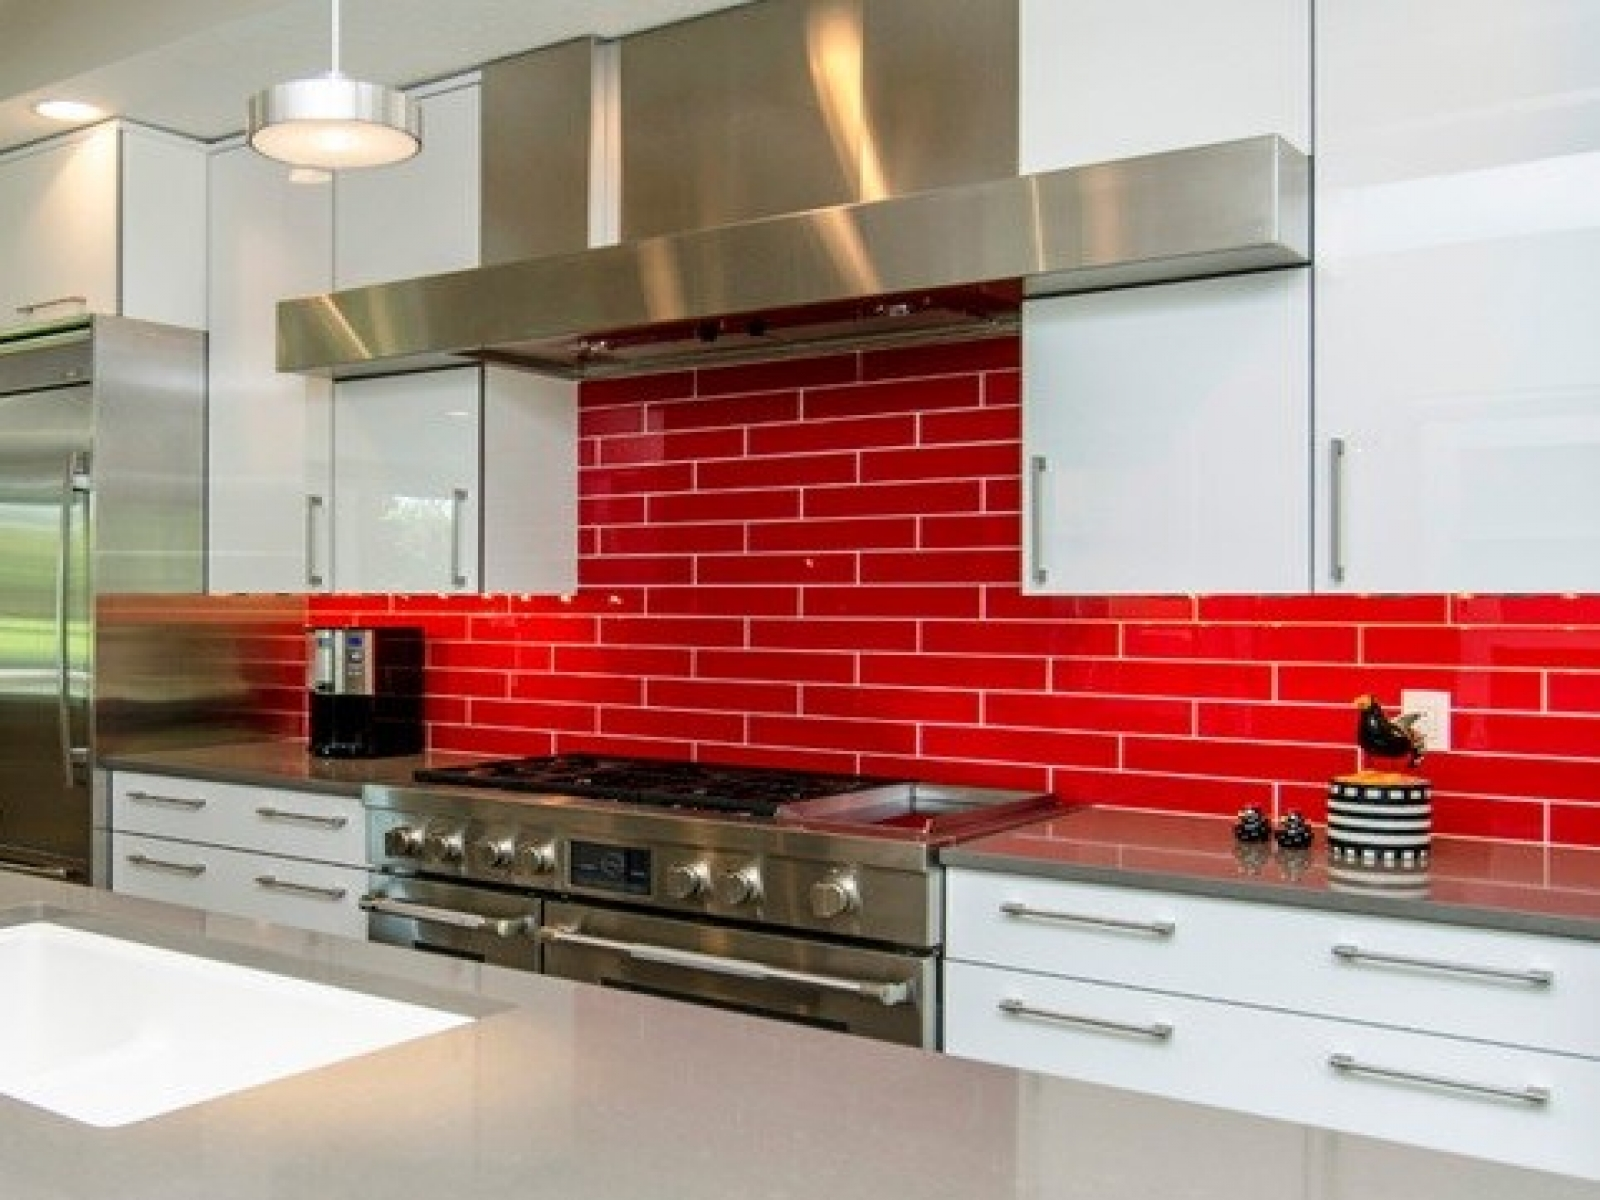 50 Best Kitchen Backsplash Ideas for 2020